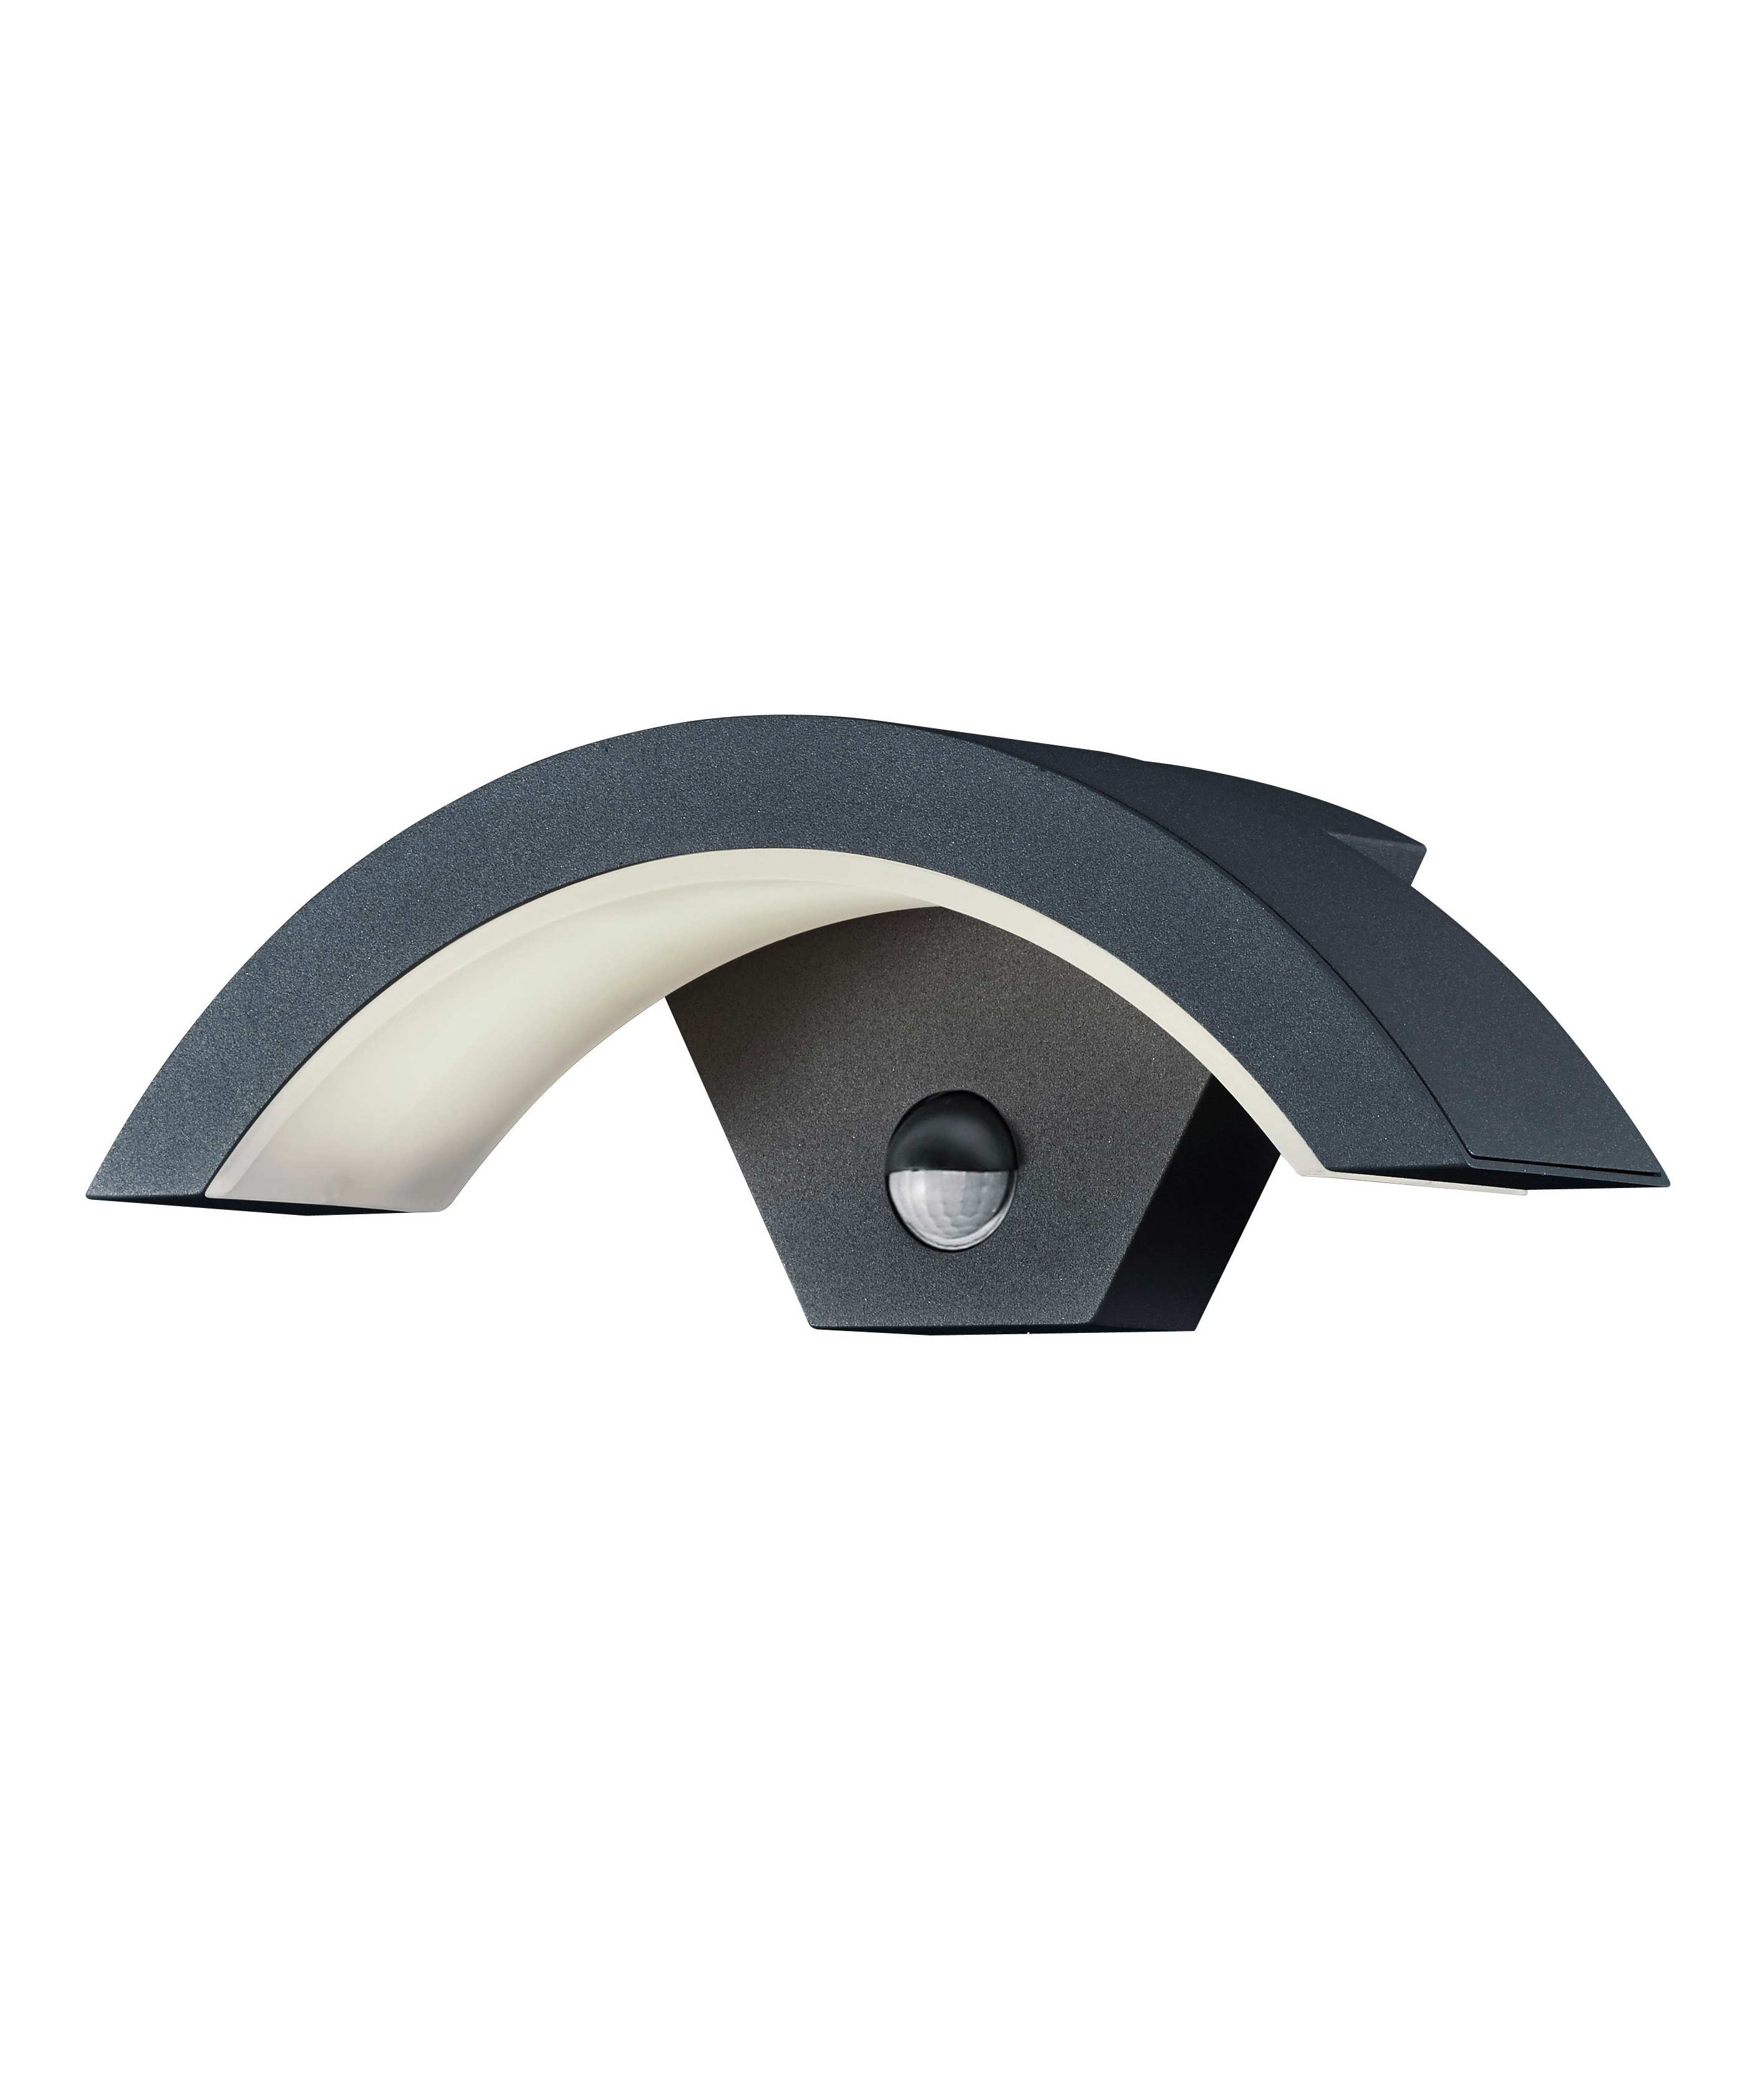 Crescent Led Exterior Wall Light With Pir